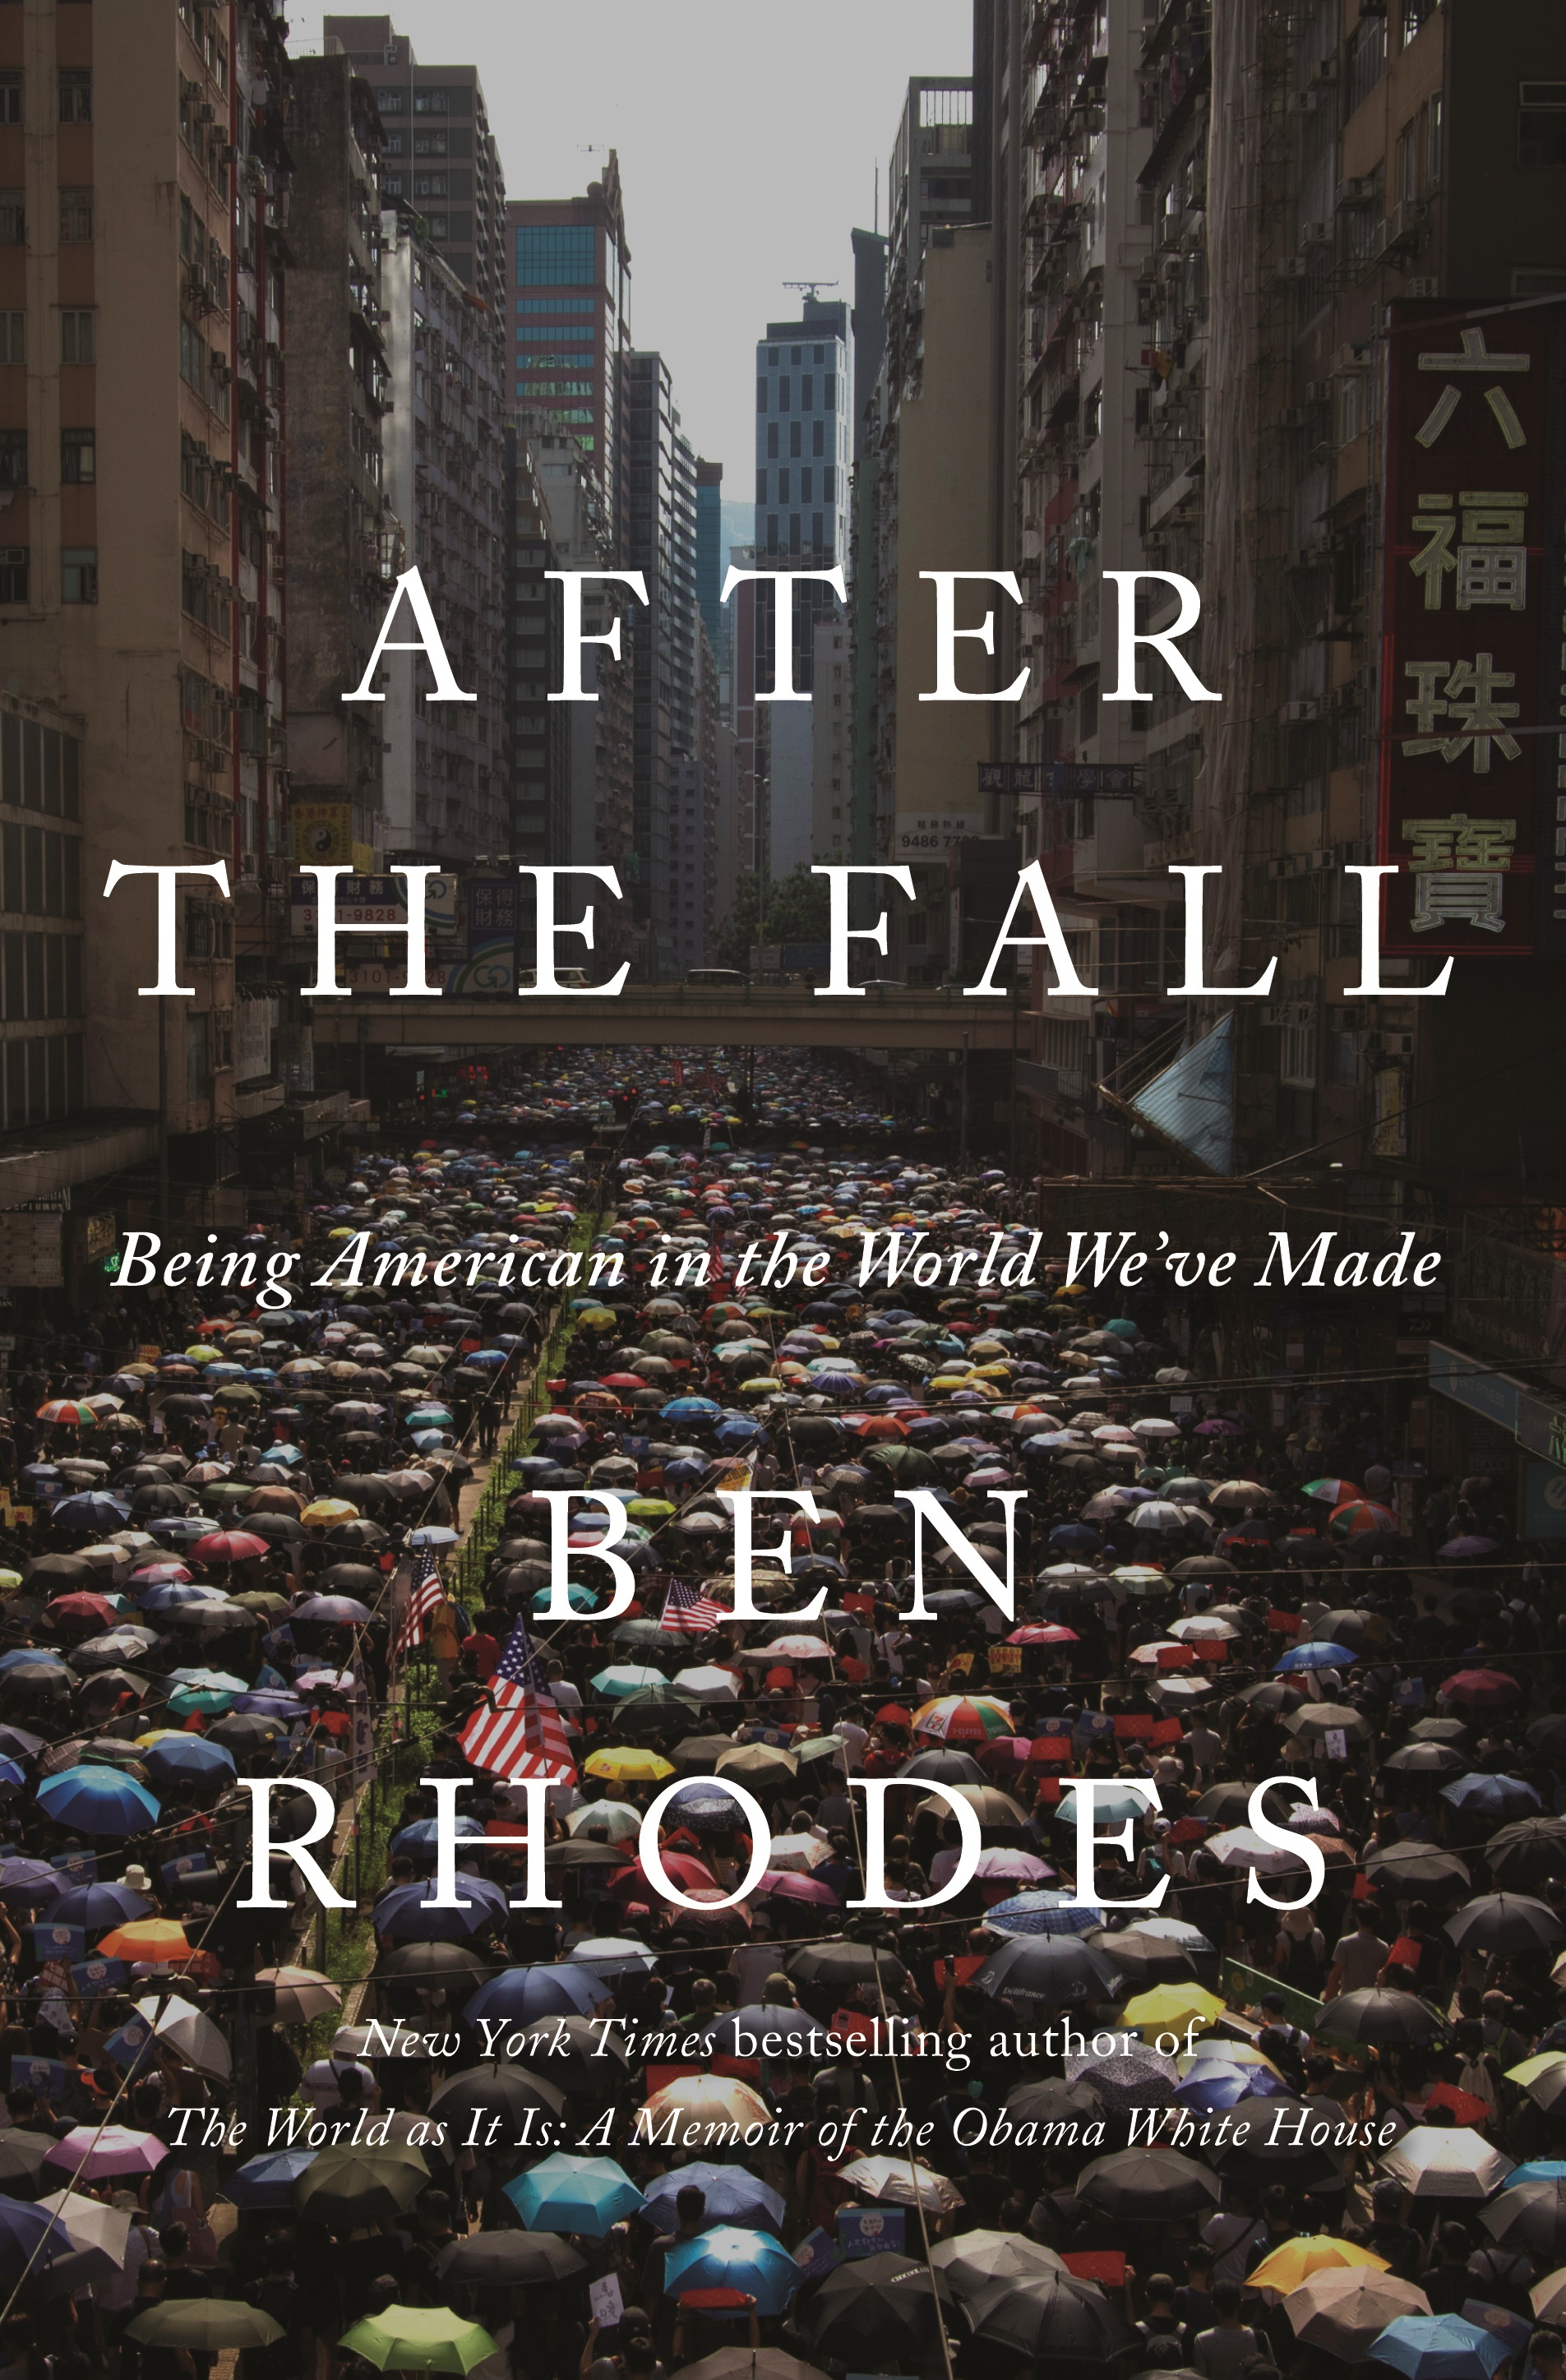 Ben Rhodes - After the Fall: Being American in the World We've Made